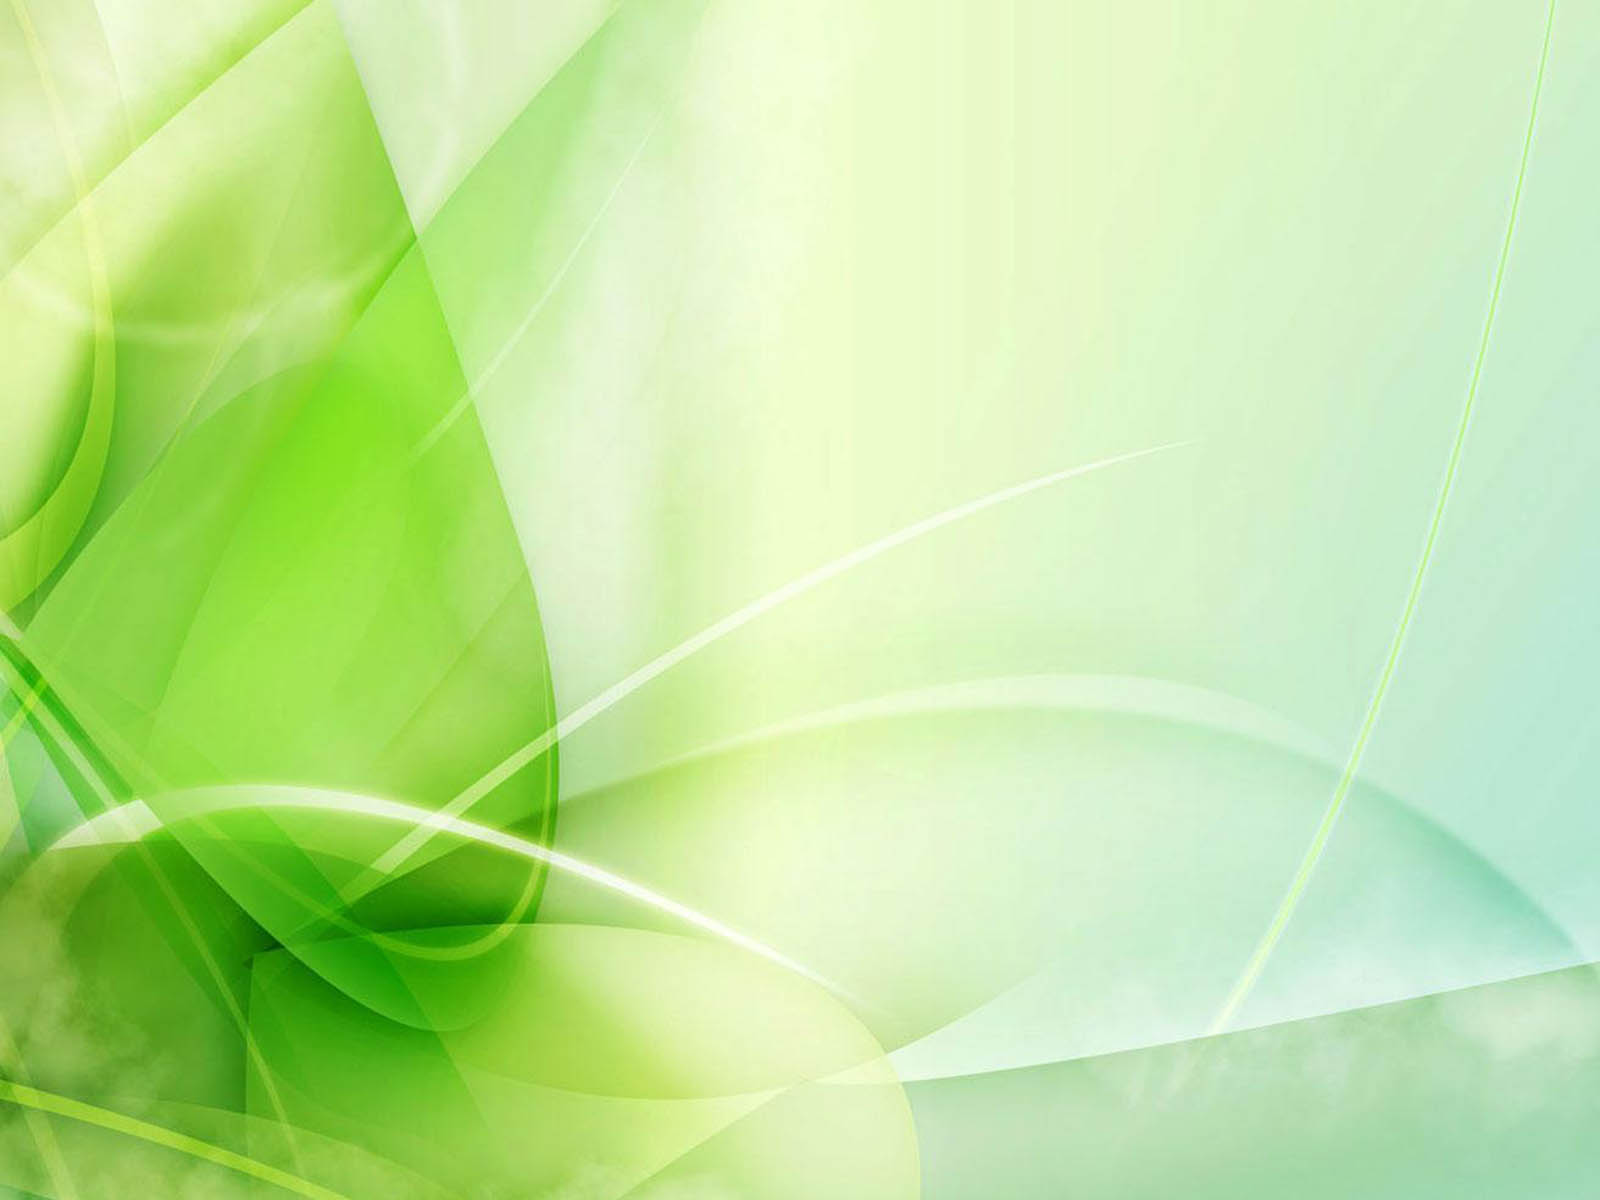 green background clipart - photo #21